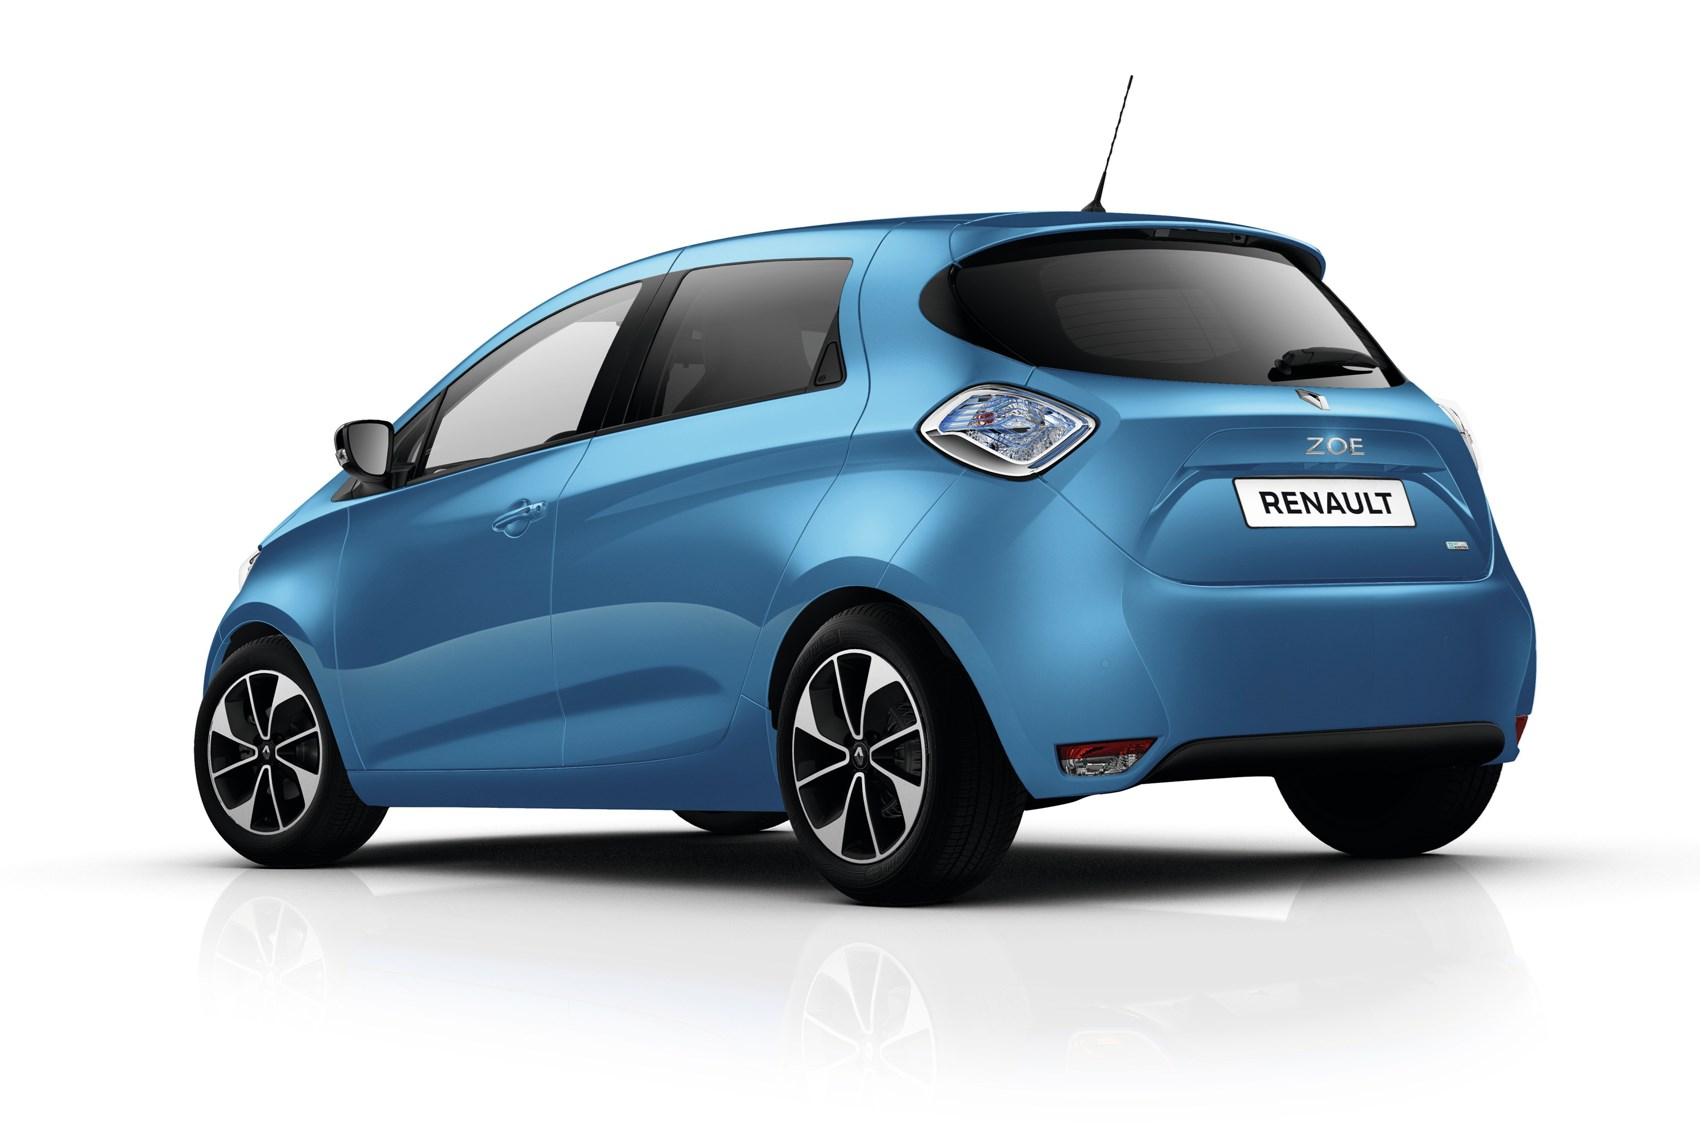 grown ranger latest renault zoe claims 250 miles per charge by car magazine. Black Bedroom Furniture Sets. Home Design Ideas